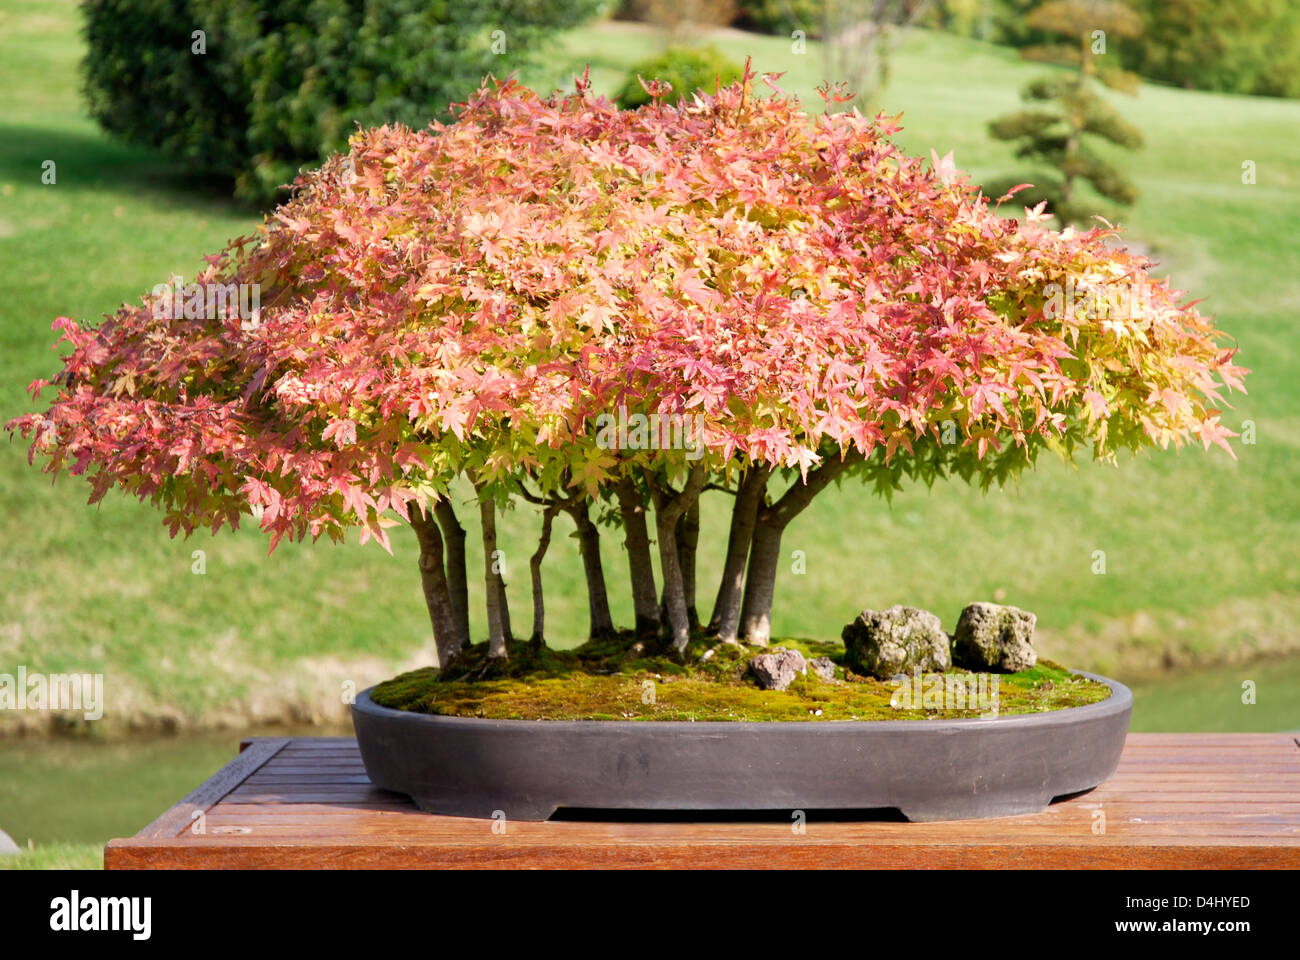 Acer Maple In Pot Stock Photos Acer Maple In Pot Stock Images Alamy